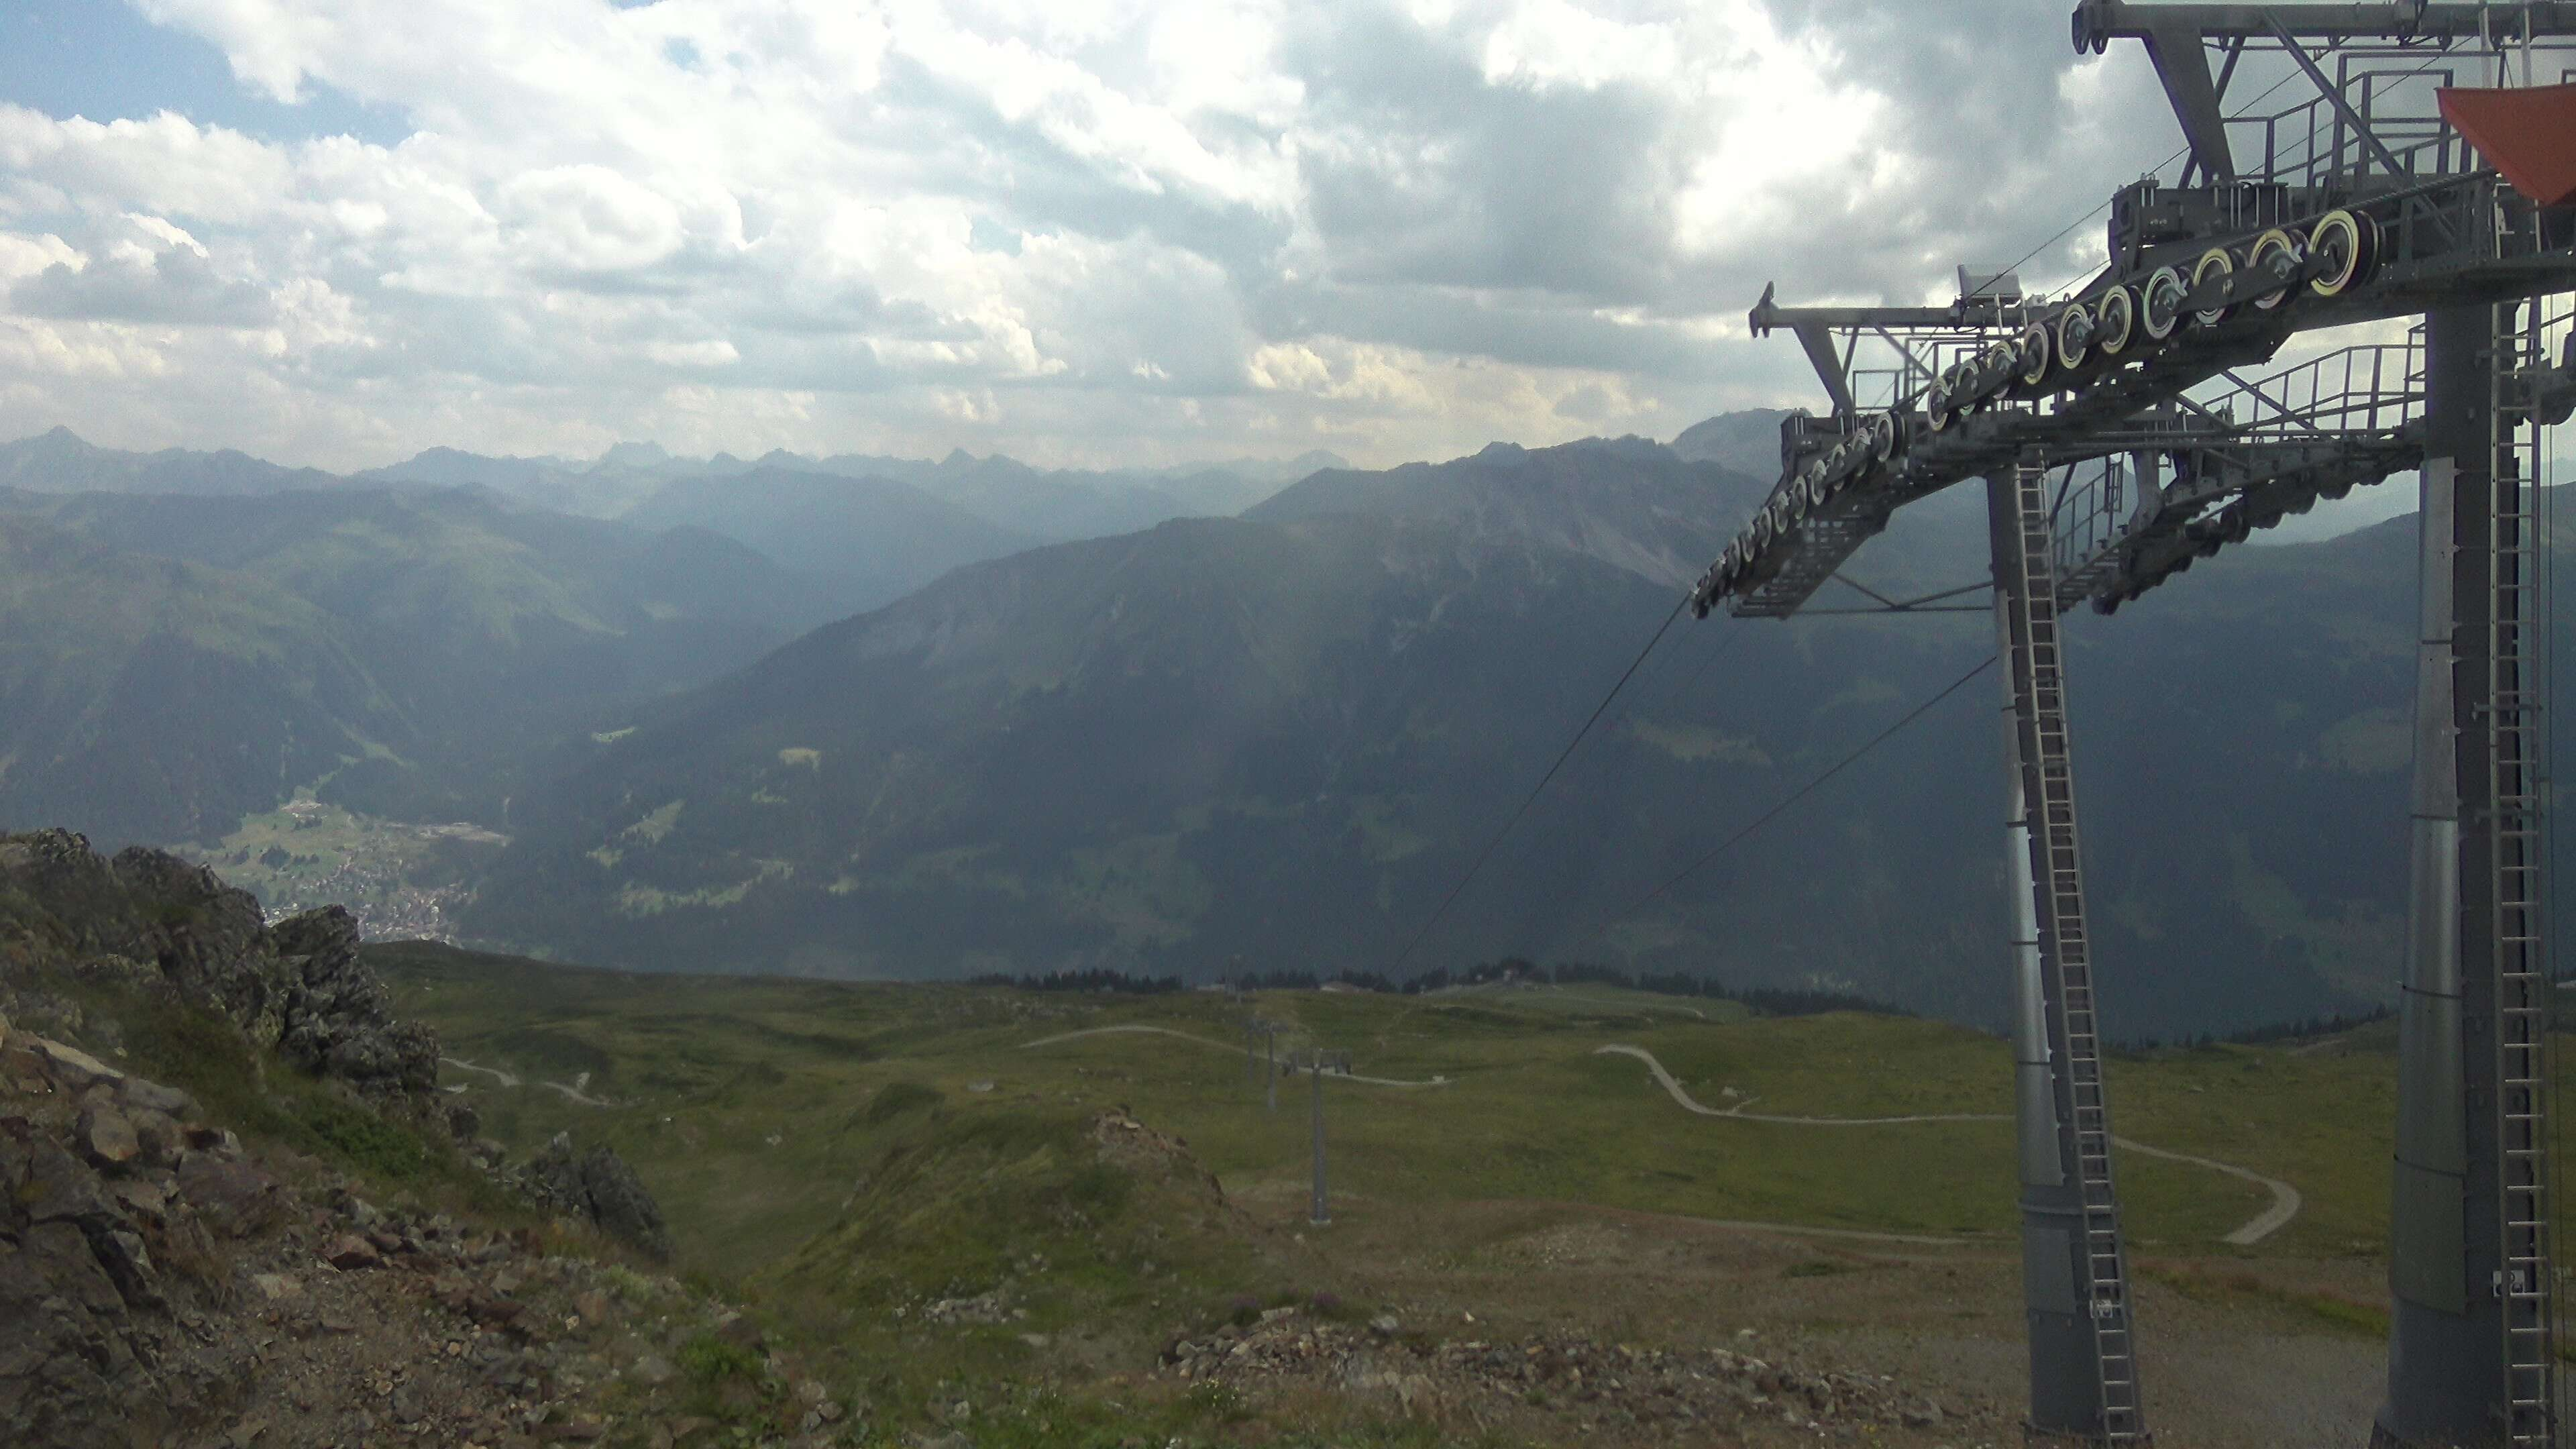 Madrisa, Blick Klosters